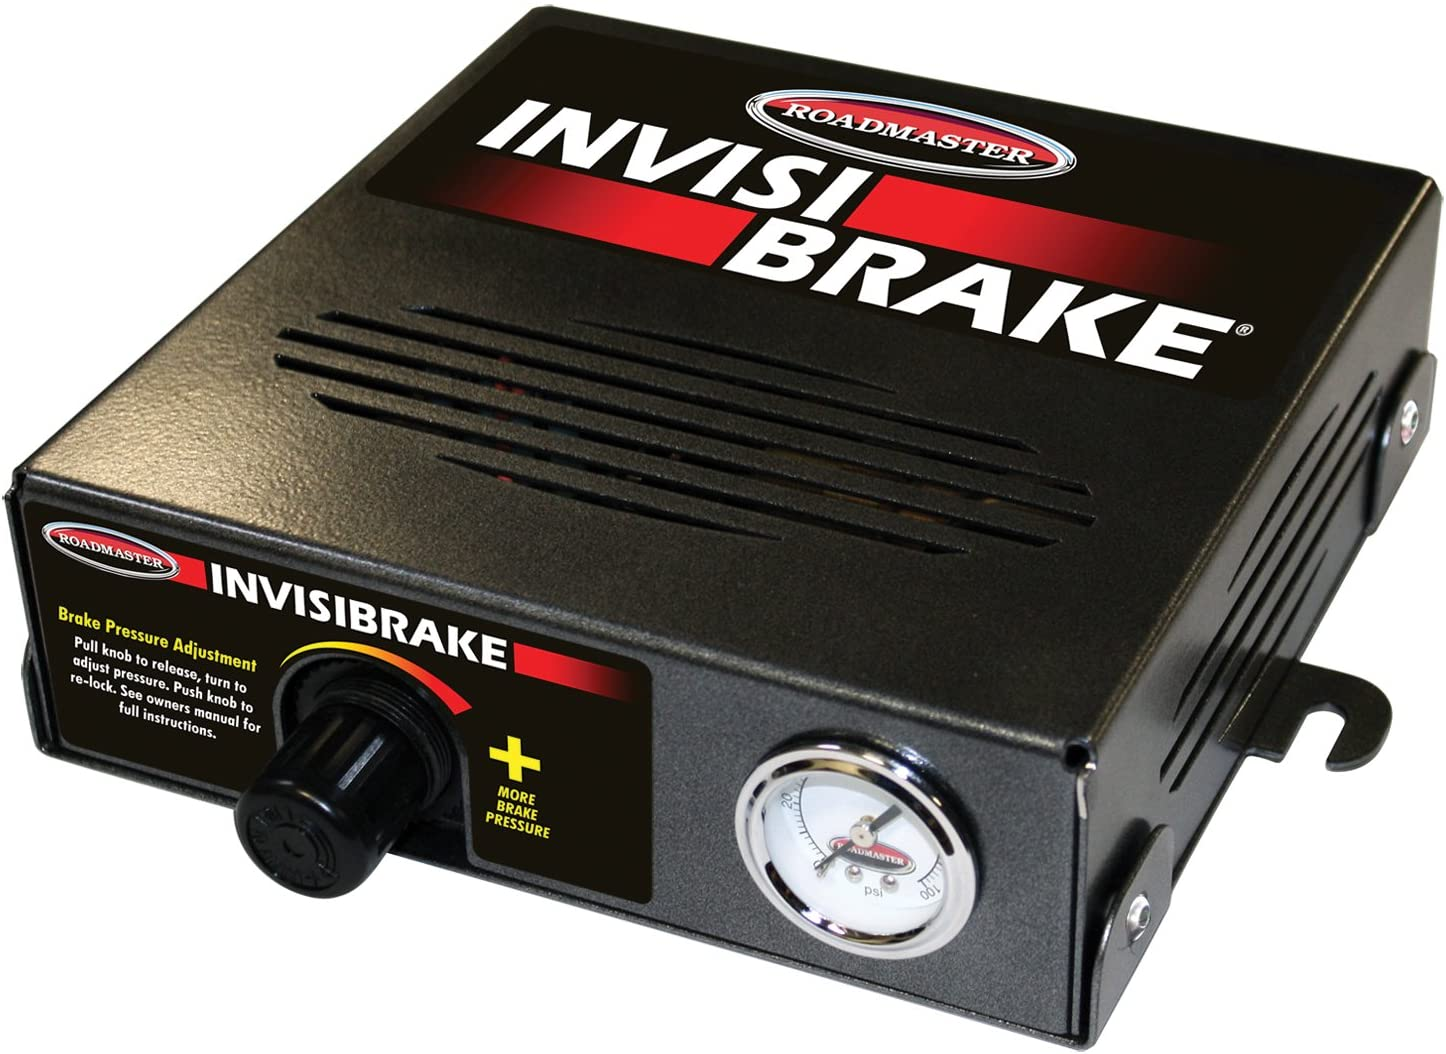 Roadmaster 8700 Invisibrake Hidden Power Braking System}